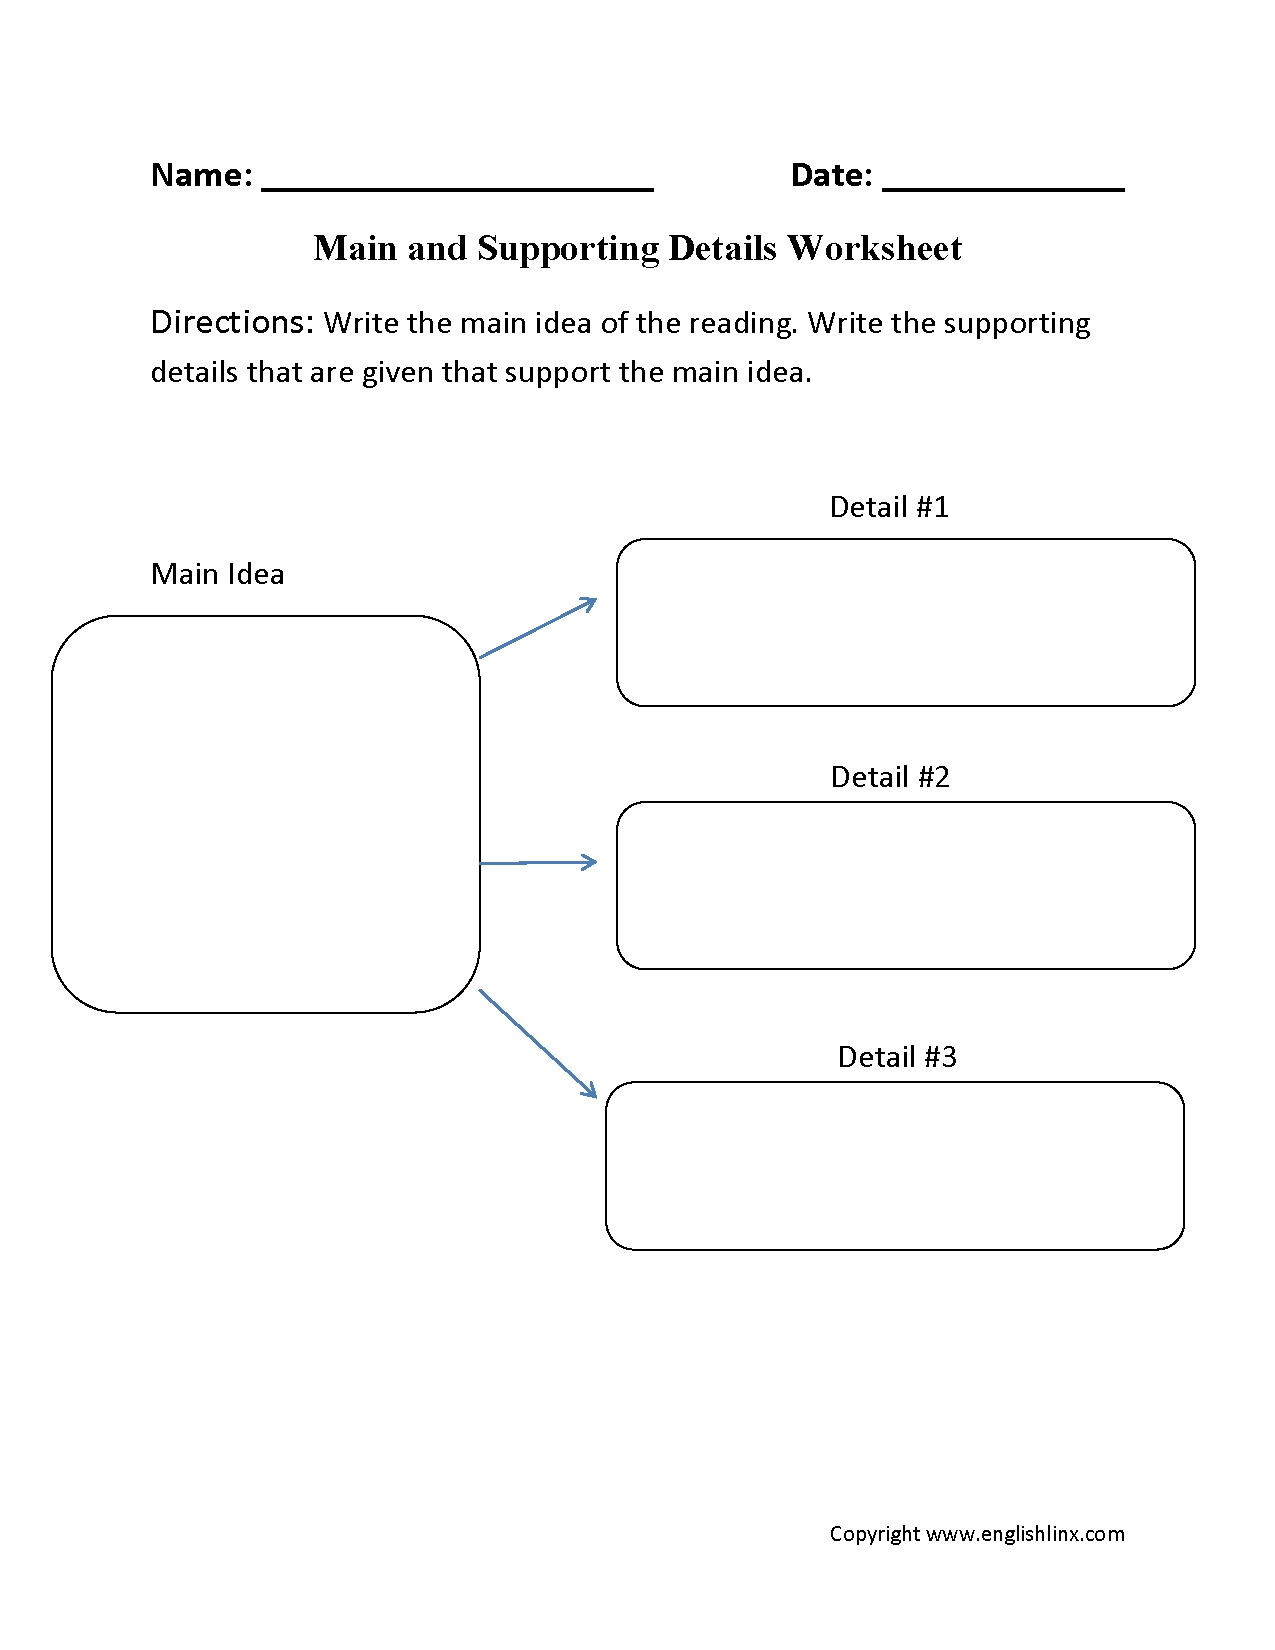 10 Stunning Main Idea And Supporting Details Worksheet